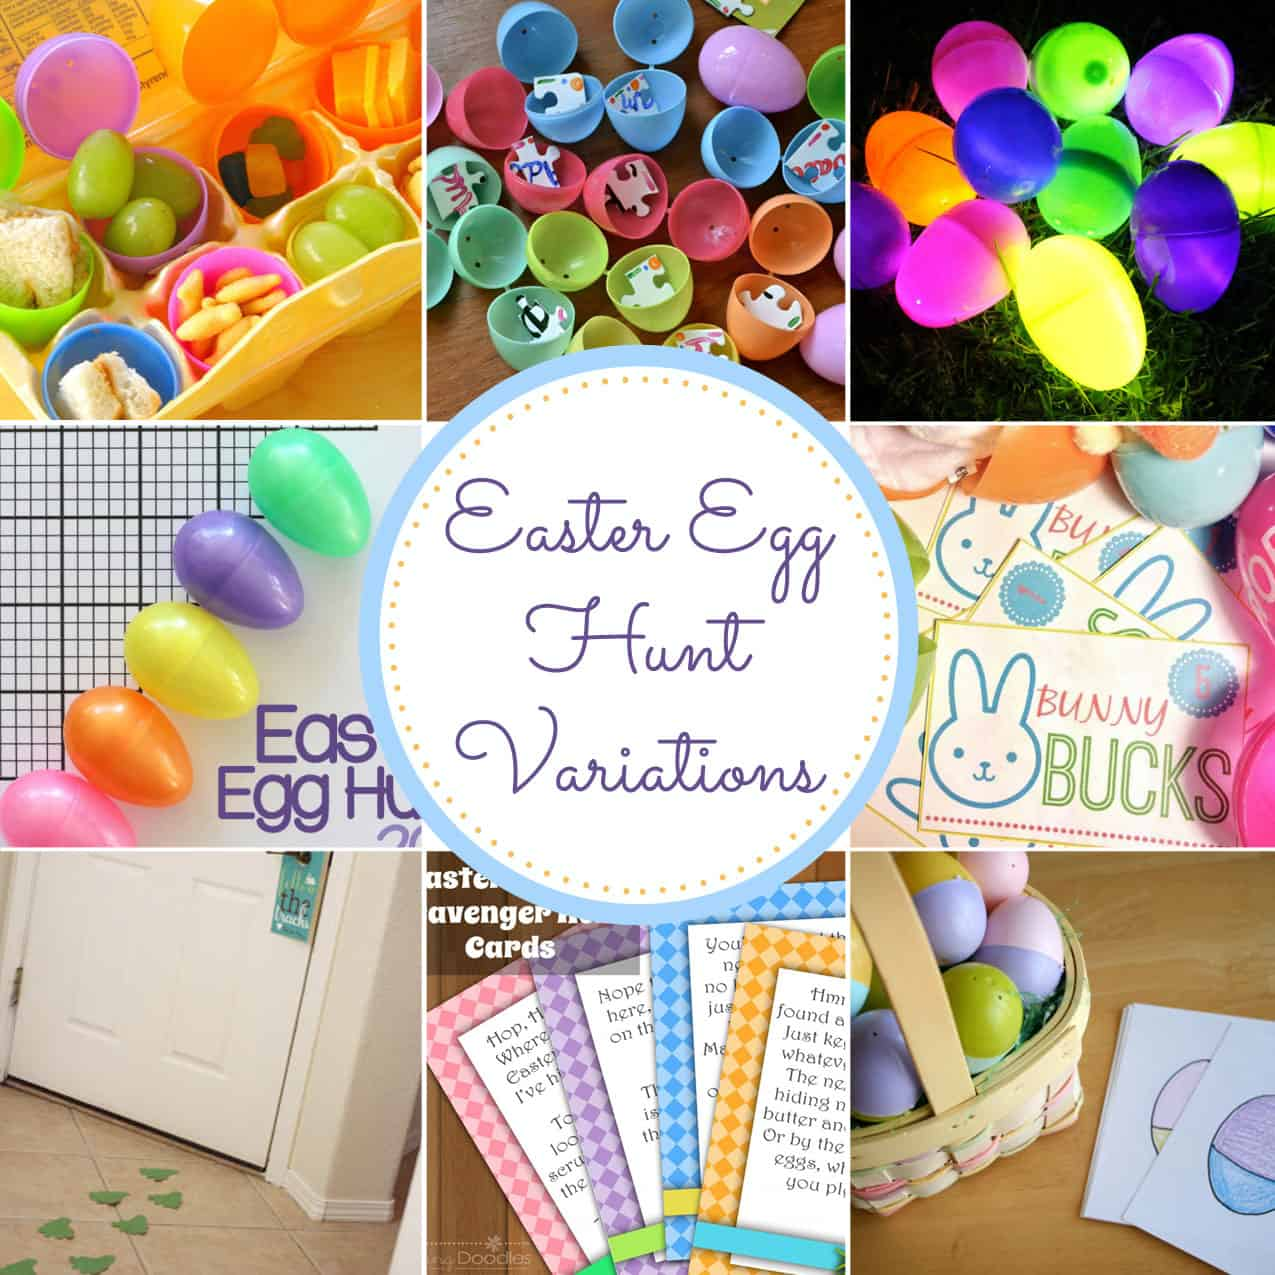 10+ Easter Egg Hunt Ideas that are perfect for families in all stages! From